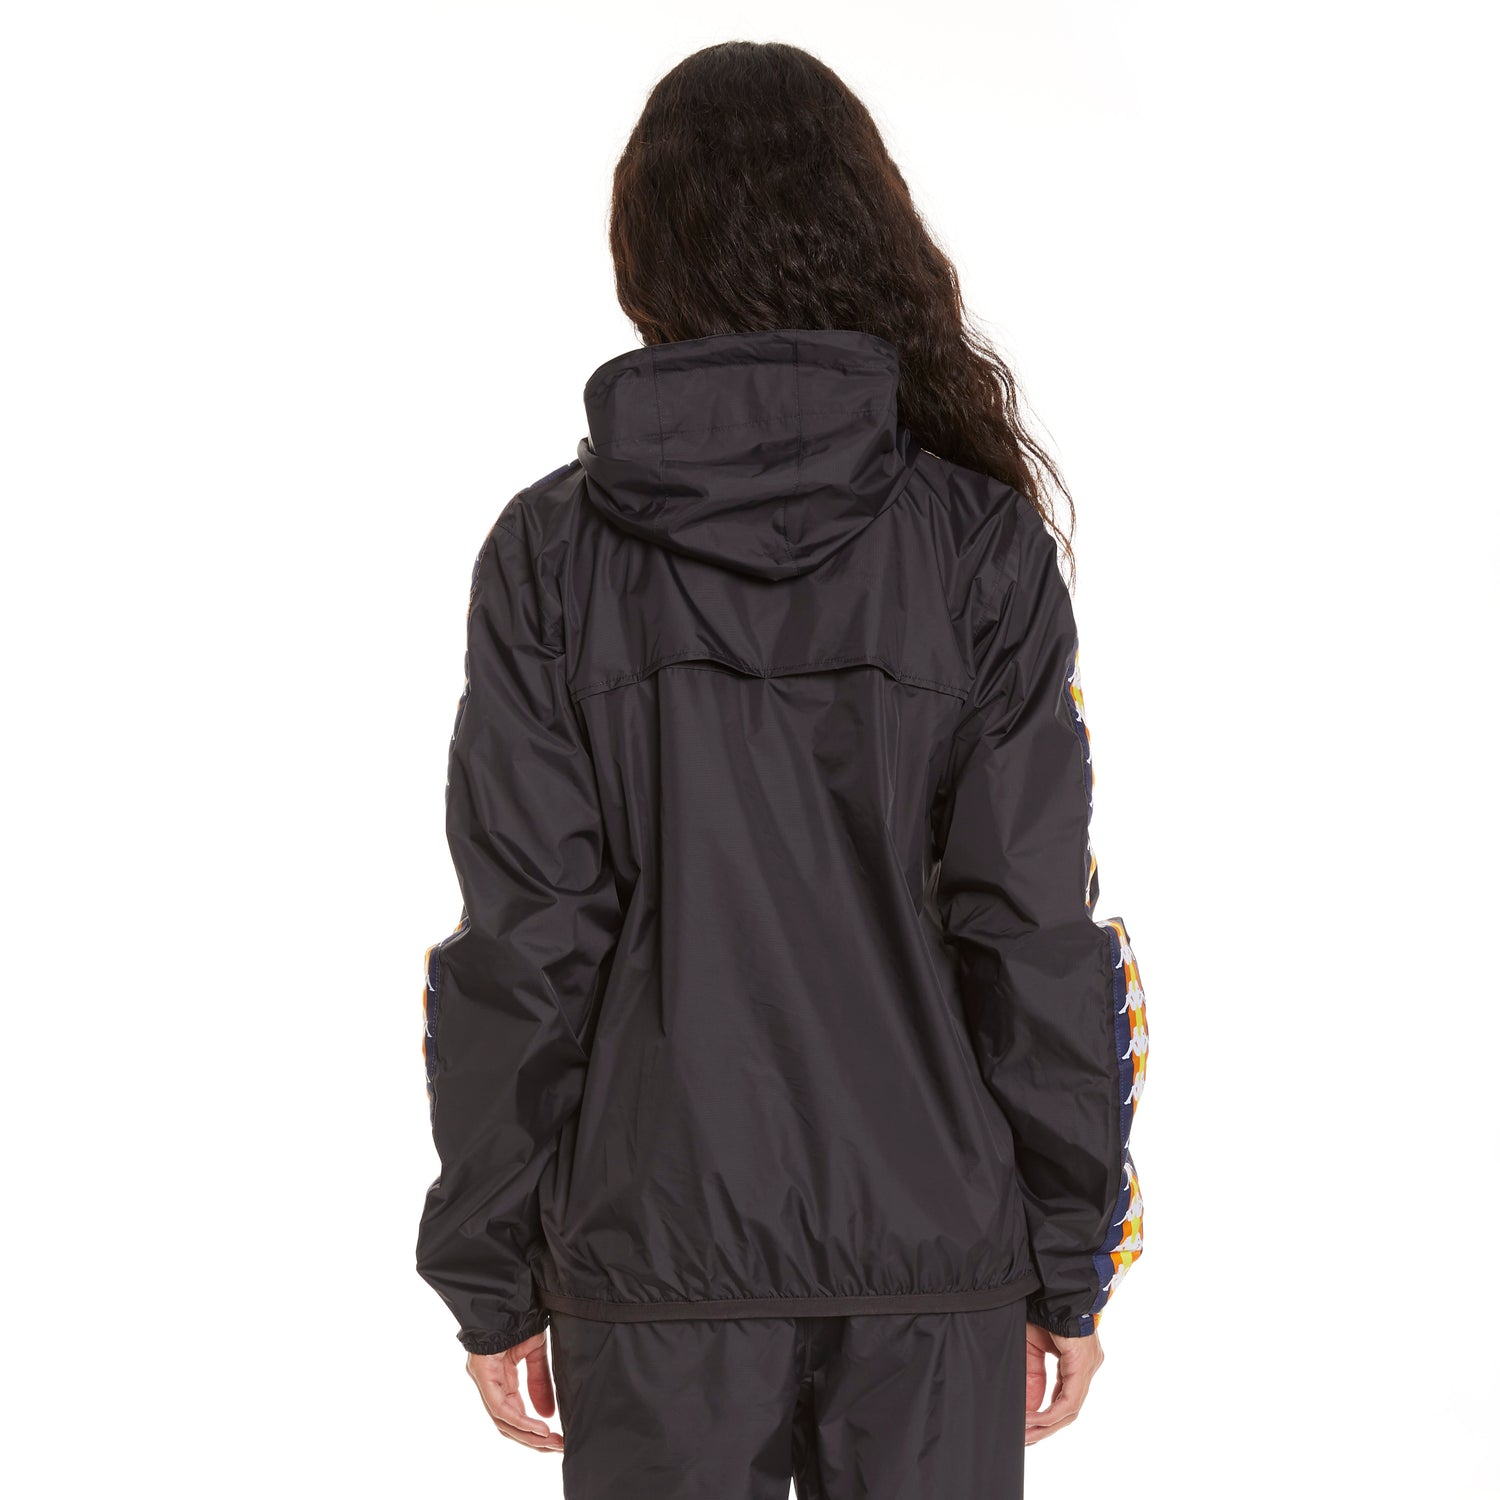 Women's K-Way X Kappa Le Vrai 3.0 Leon Banda Black - Back